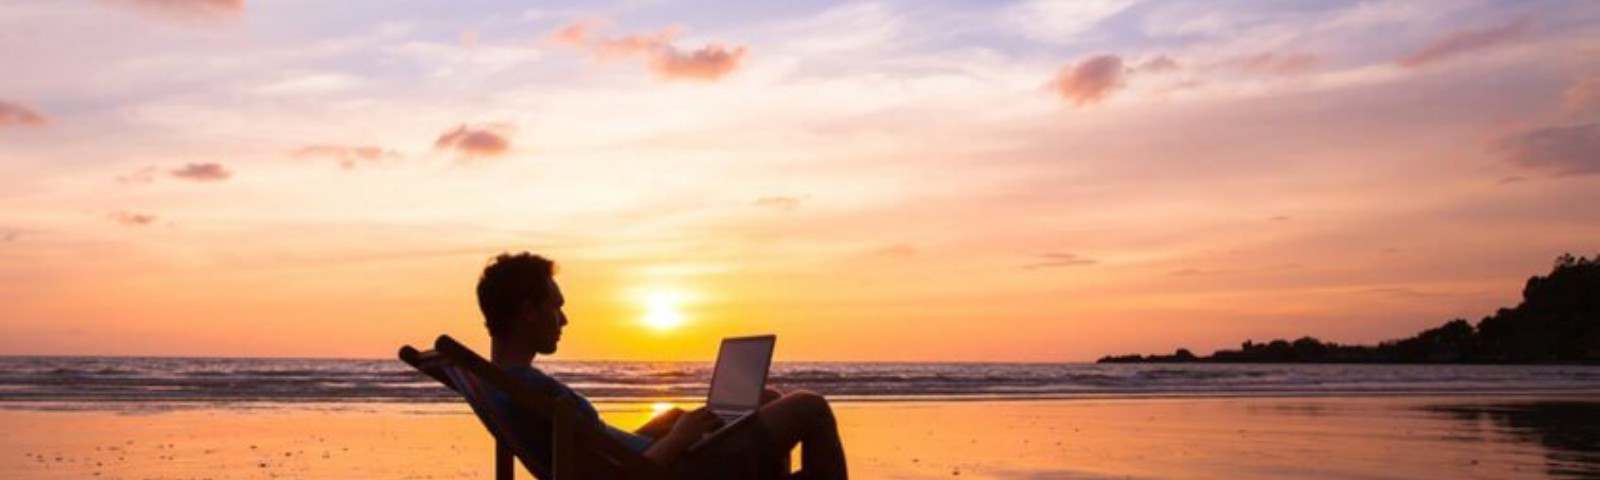 What Is A Digital Nomad? - Data Driven Investor - Medium